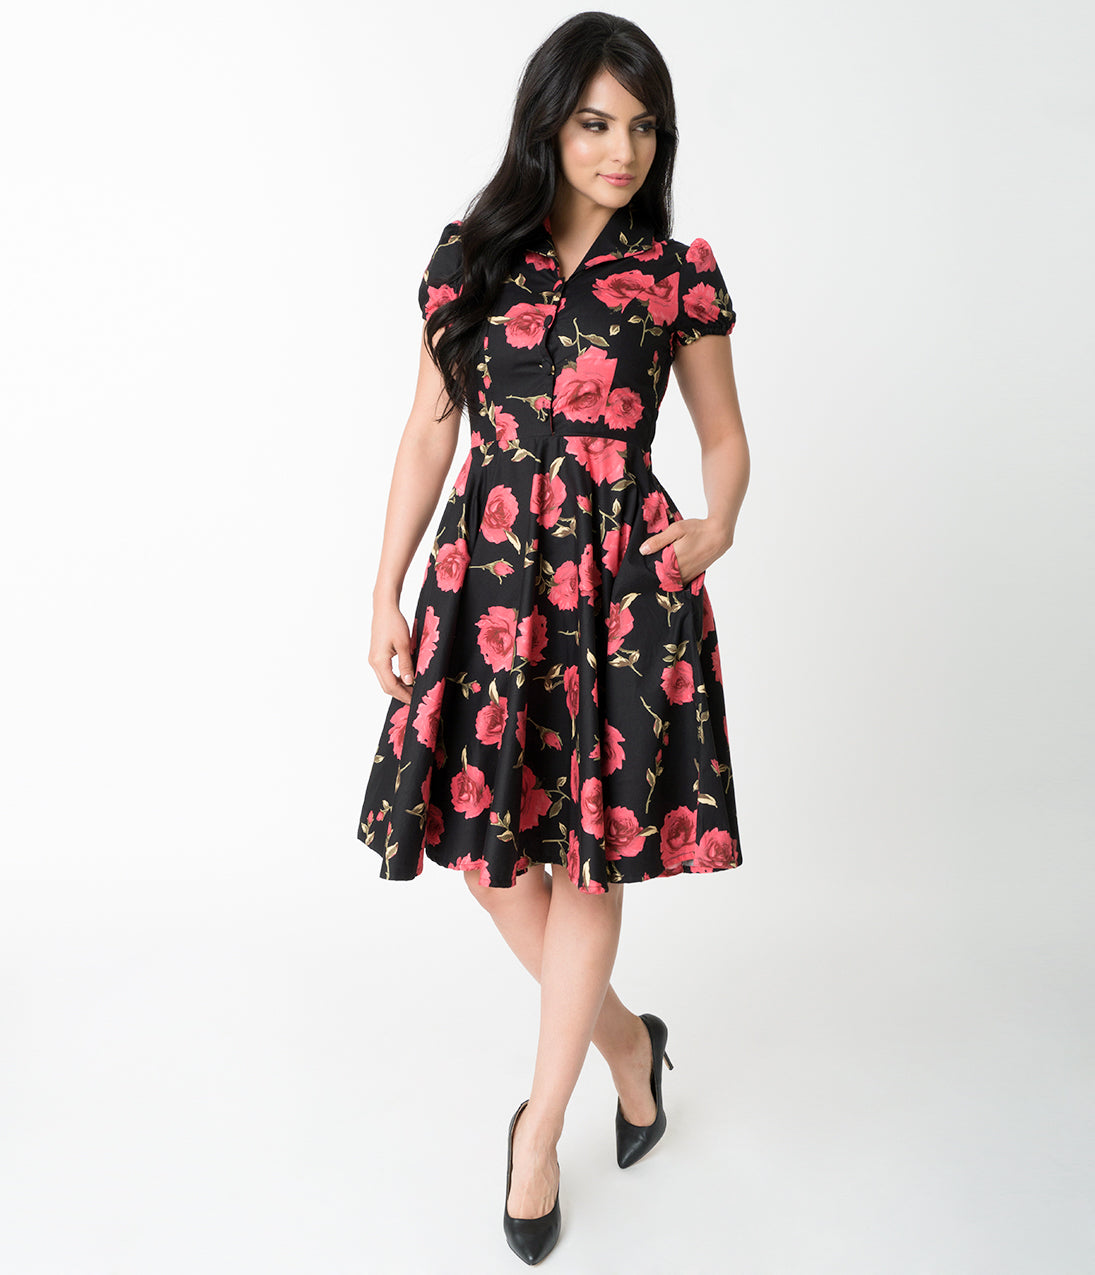 1950s Swing Dresses | 50s Swing Dress 1950S Style Black  Red Rose Print Mona Cotton Swing Dress $68.00 AT vintagedancer.com